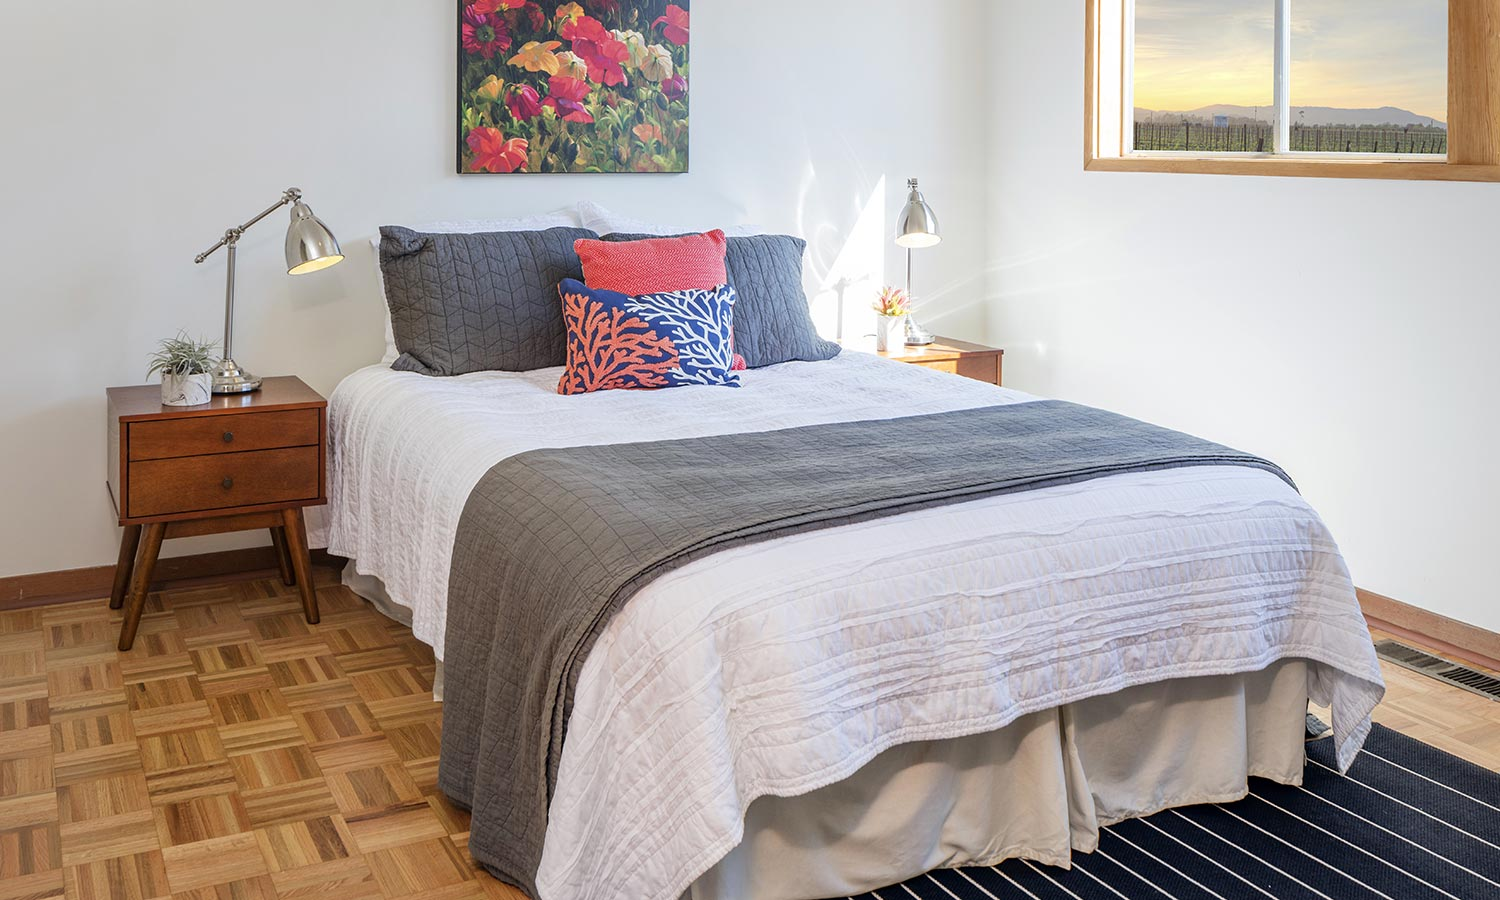 75 Different Types Of Beds For Every Style Casper Blog